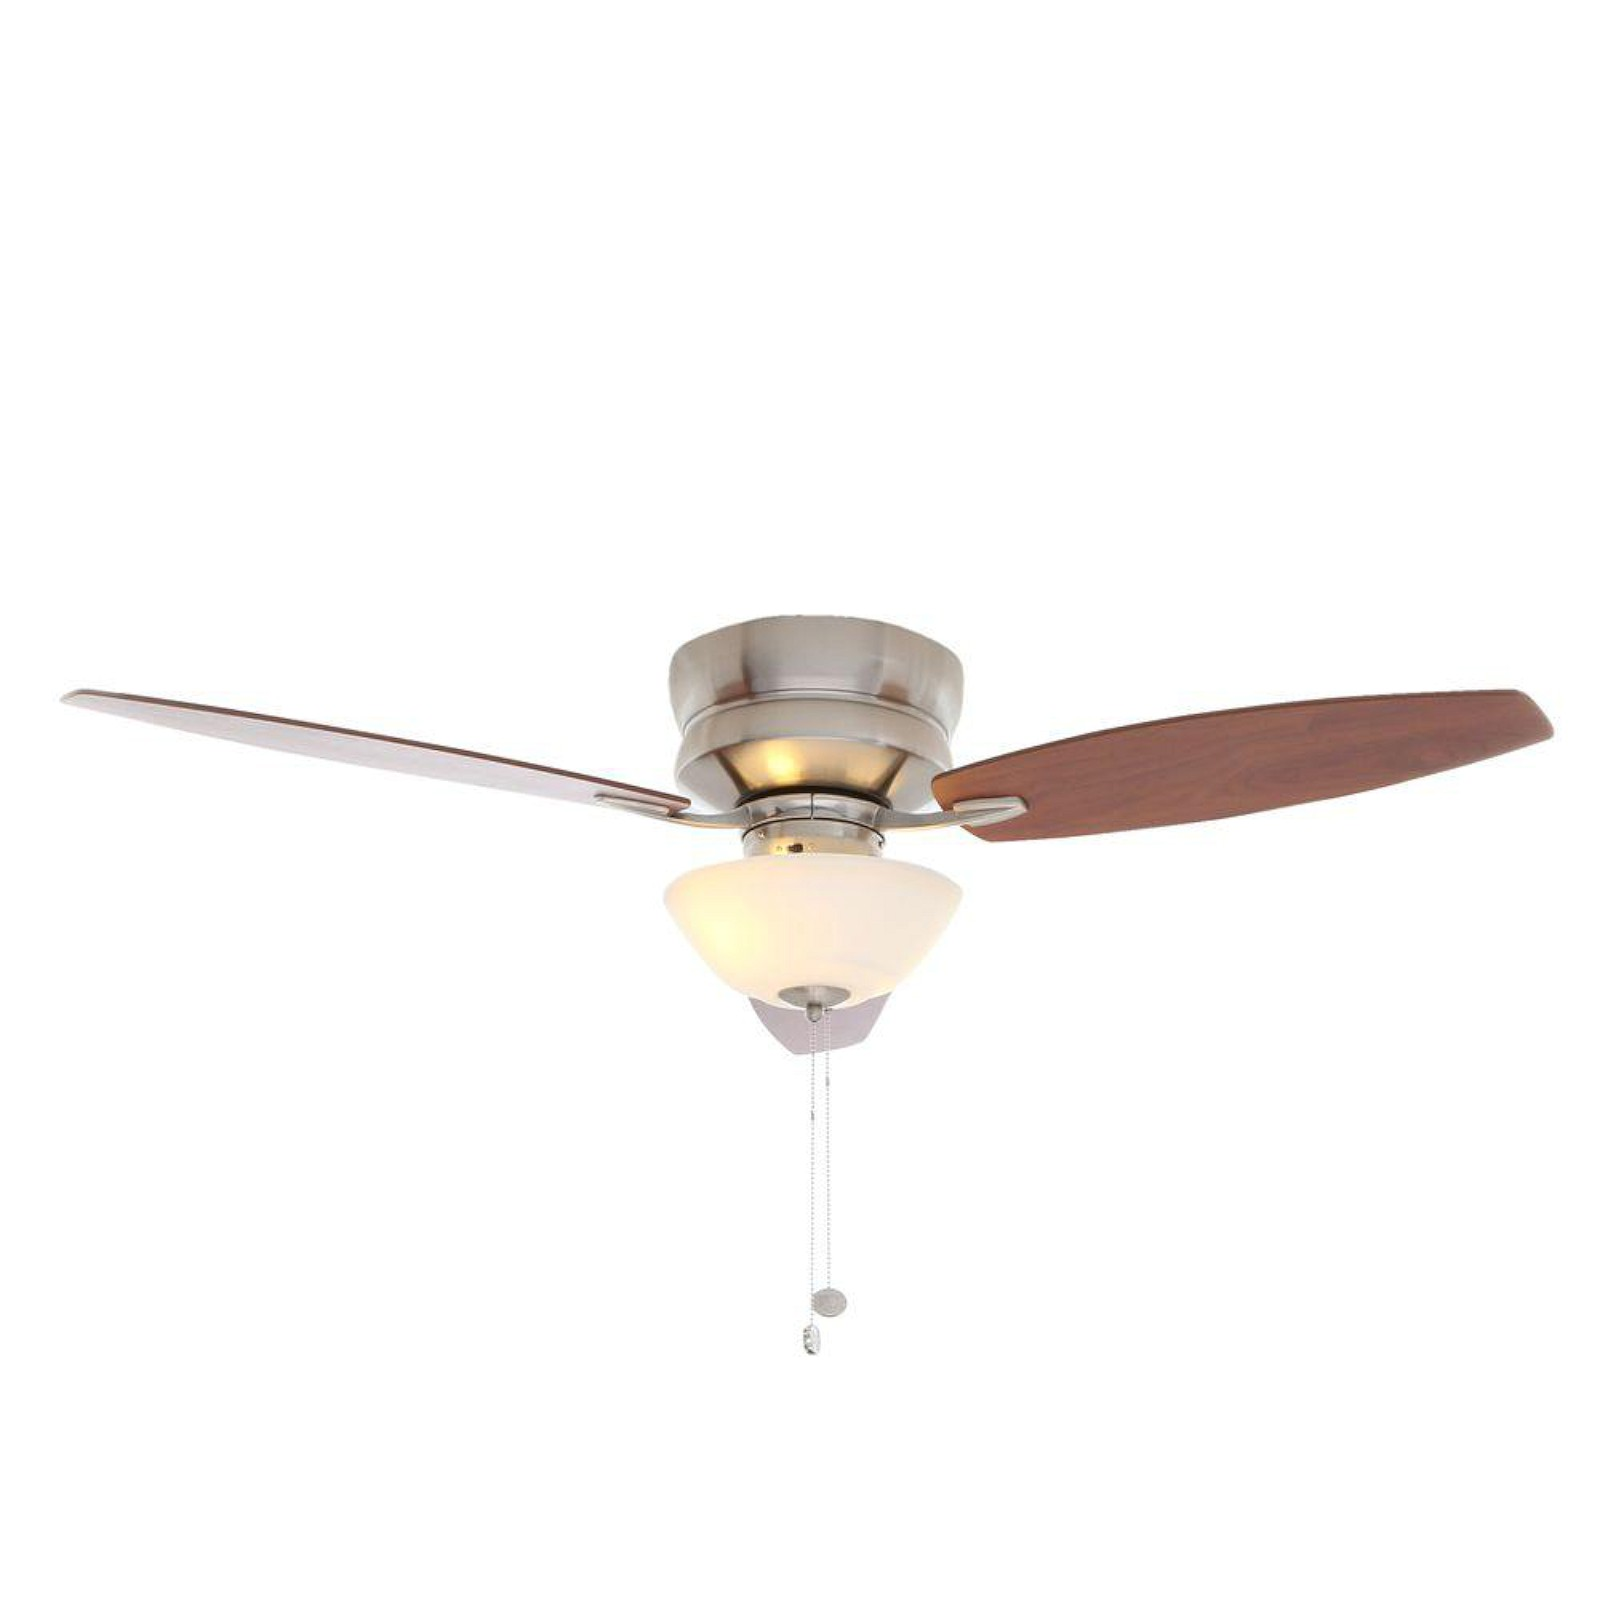 Buy Hampton Bay Rapallo 52 In. Brushed Nickel Ceiling Fan Light Kit ...